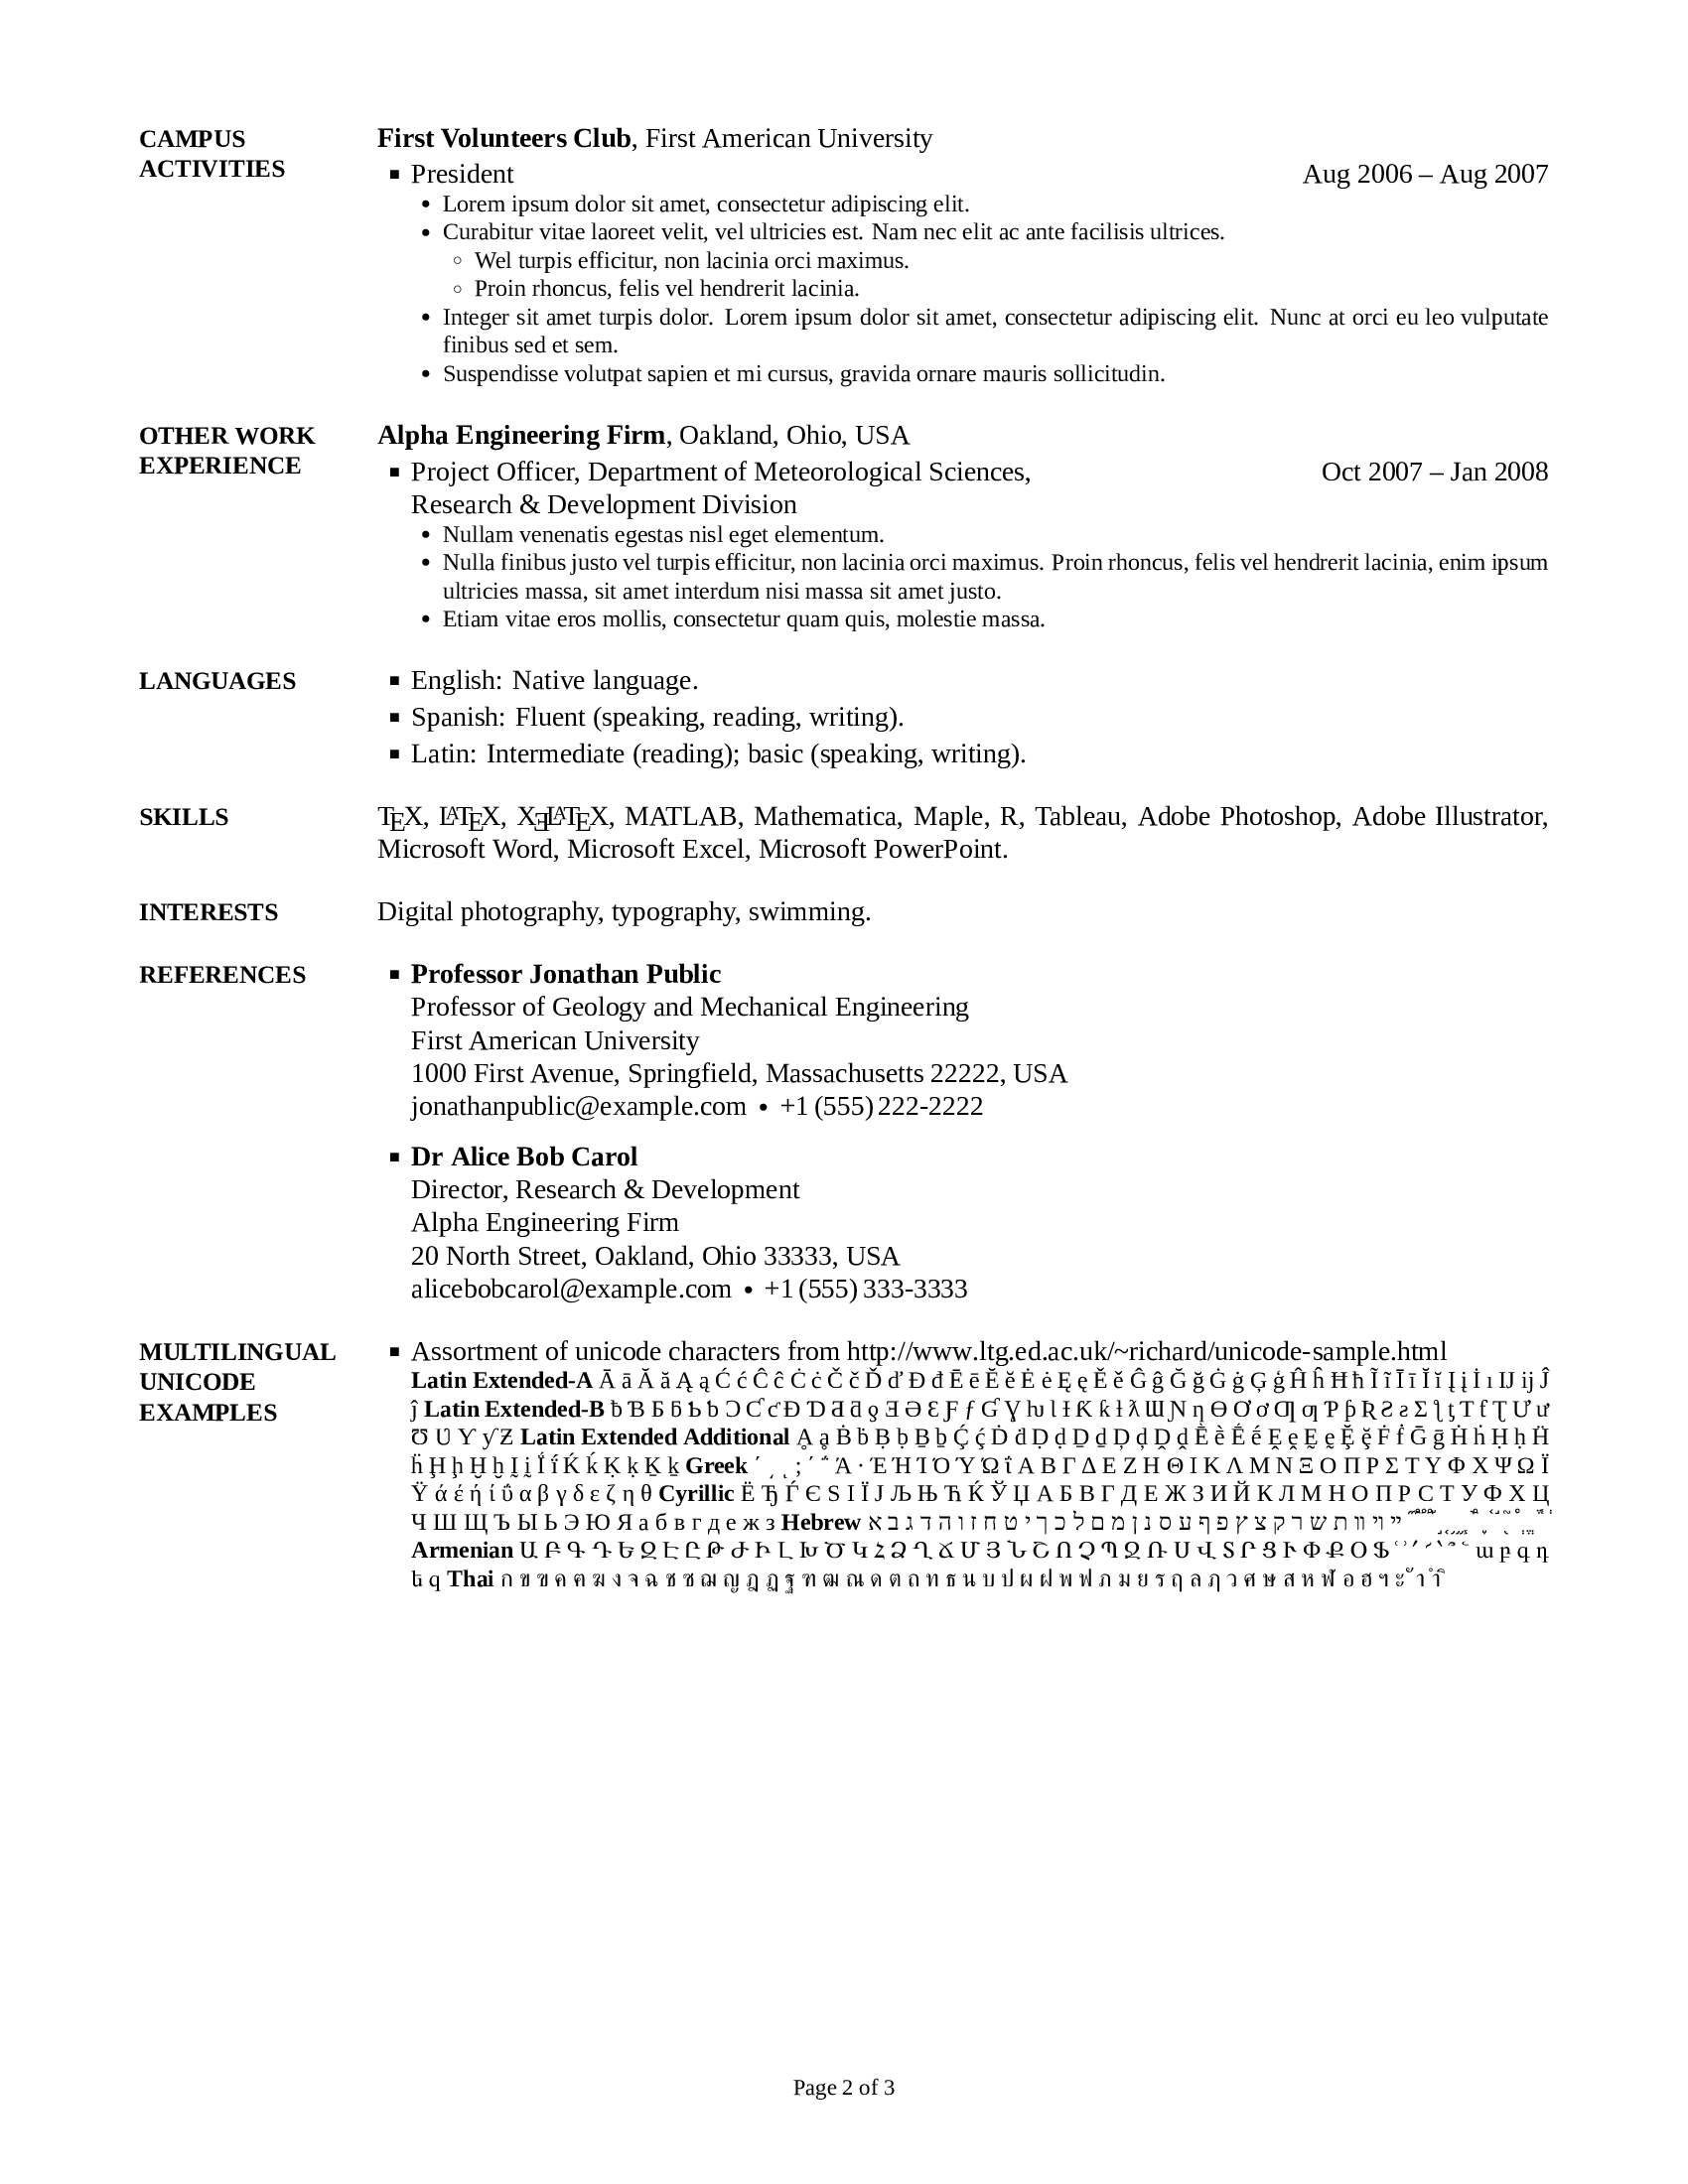 GitHub zachscrivenasimpleresumecv Template for a simple resume